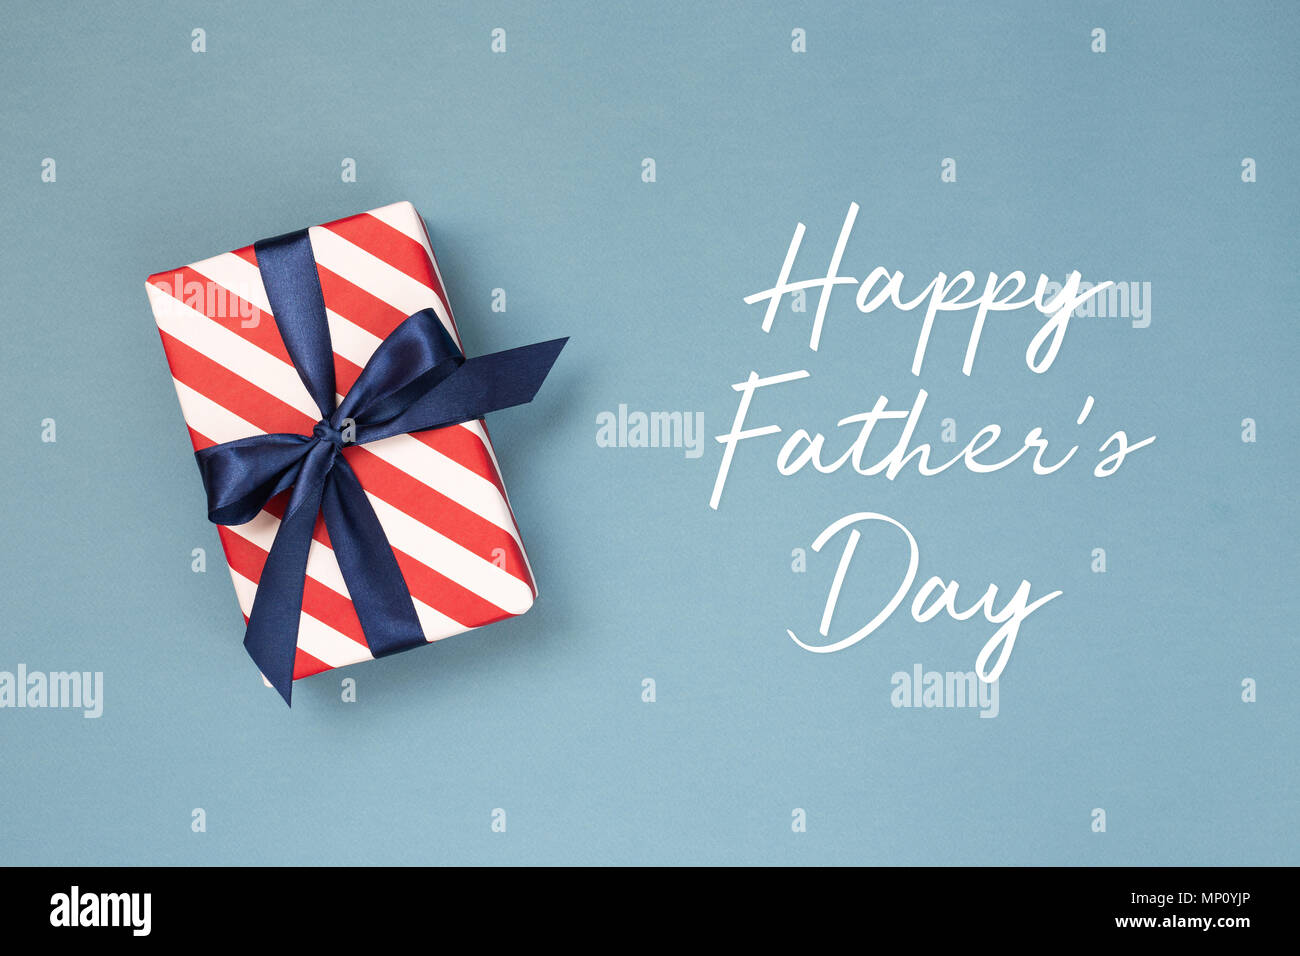 Happy Fathers Day Greeting Card With Decorated Gift Box On Blue